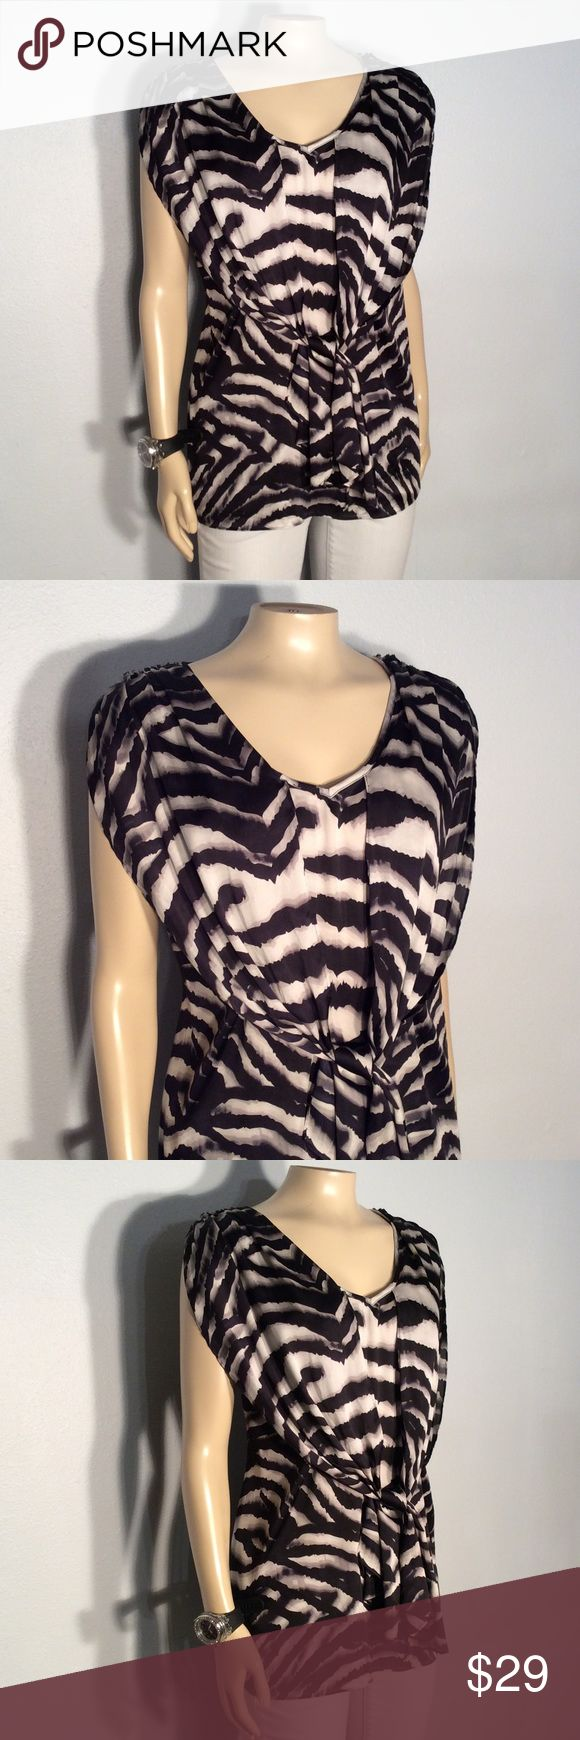 Jones New York grey & black animal print blouse Jones New York gray and black animal print blouse excellent condition no damage fabric 100% polyester Jones New York Tops Blouses